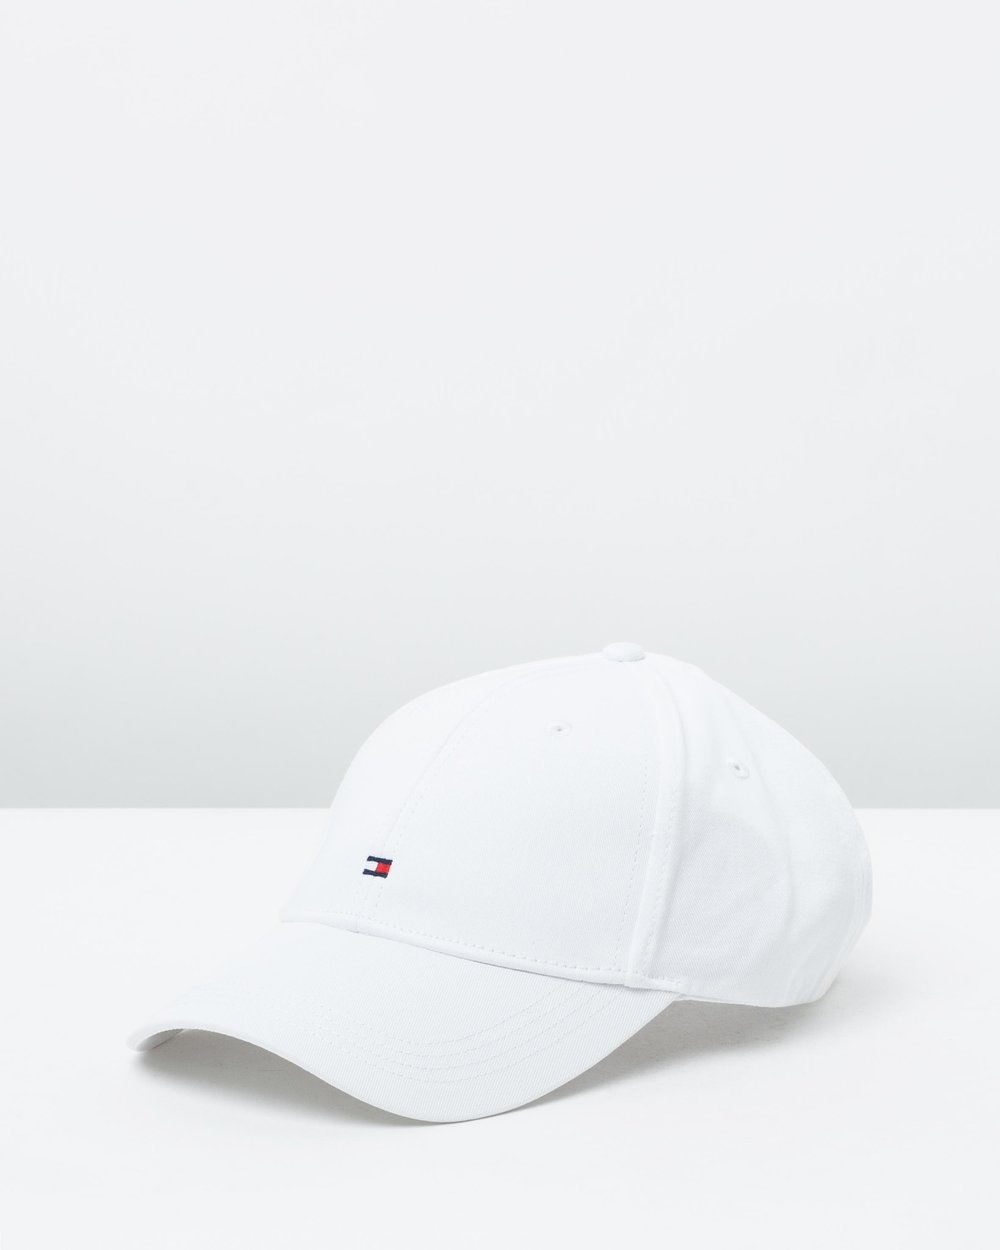 Classic Baseball Cap by Tommy Hilfiger Online  a98c98e4826